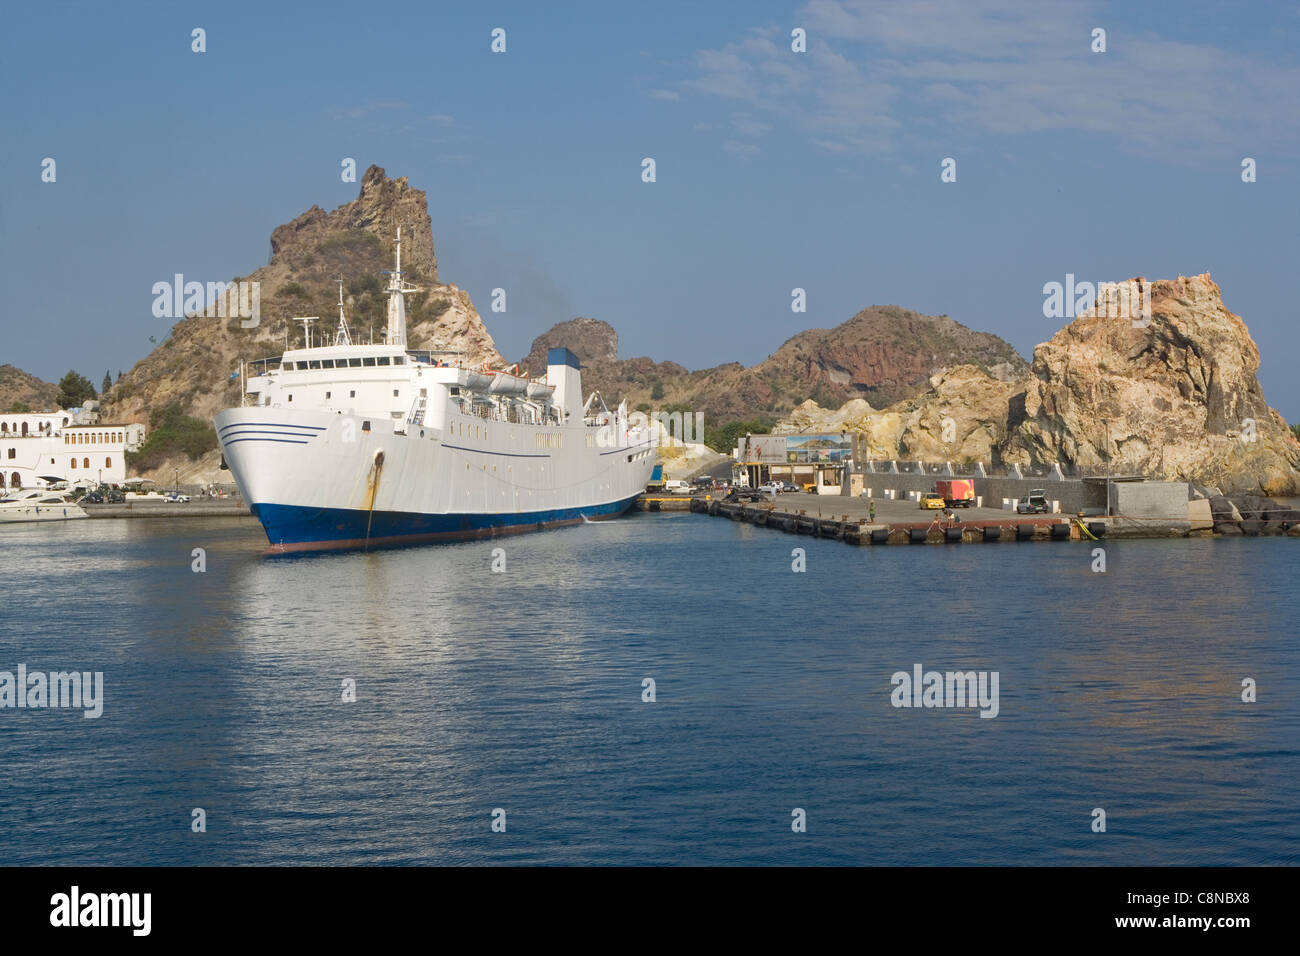 Italy, The Aeolian Islands, ferry by the rocky shore - Stock Image